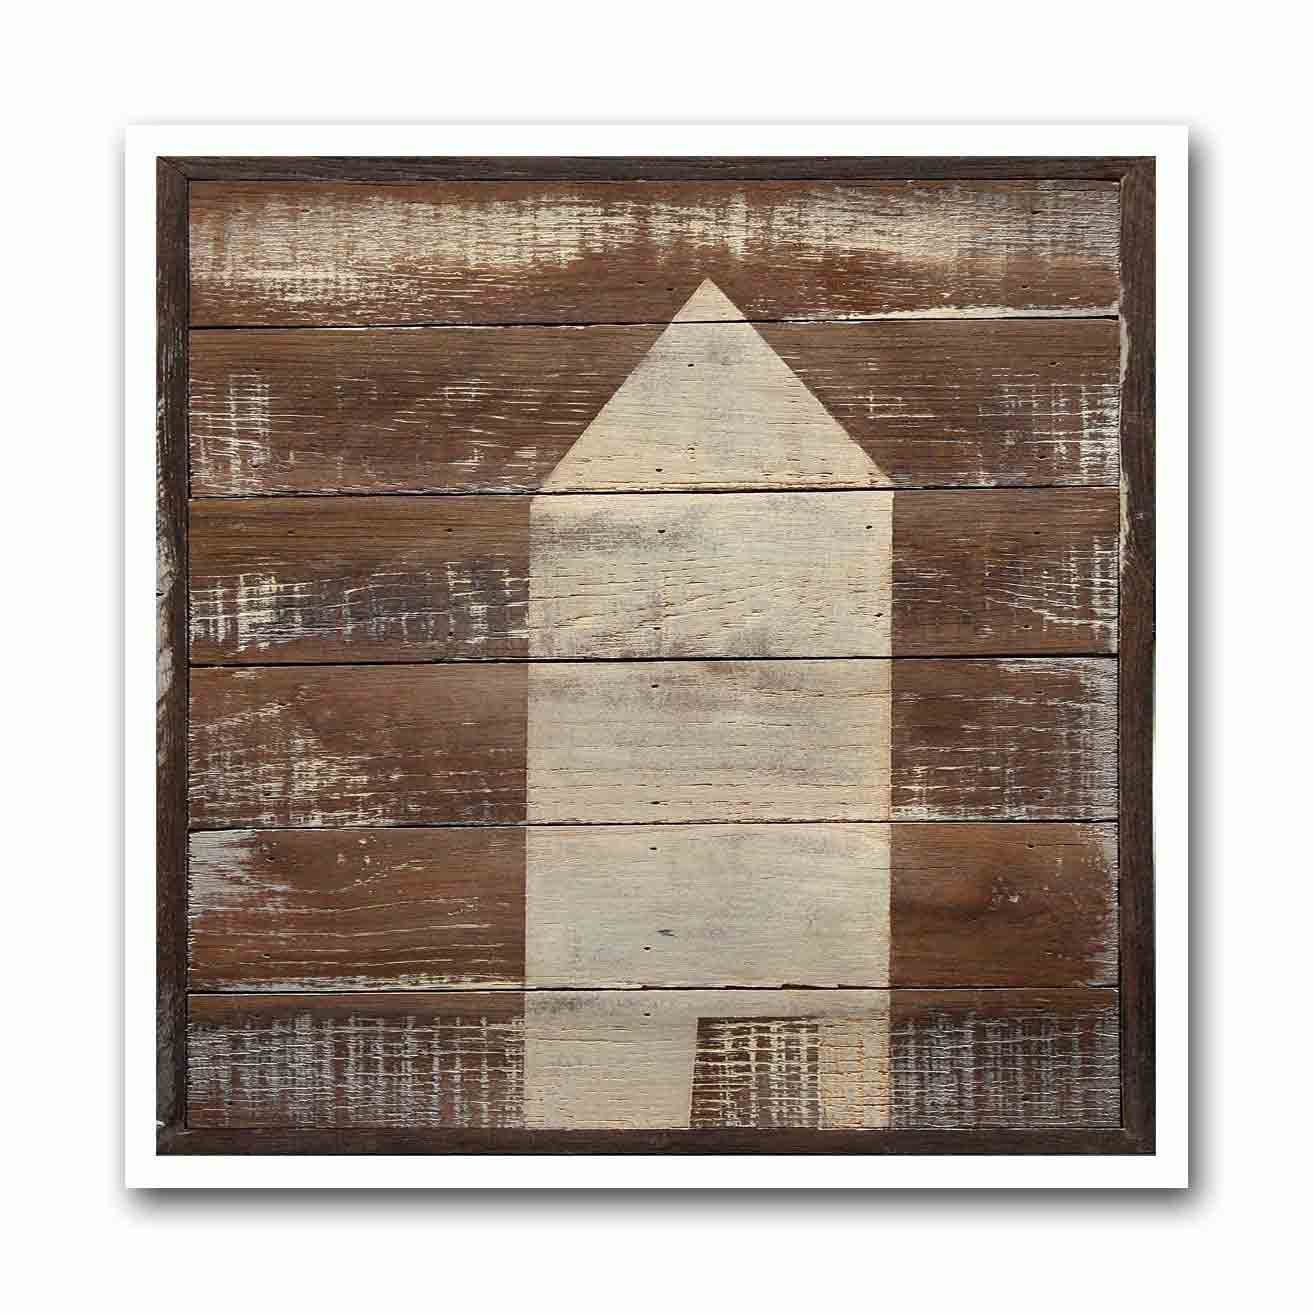 Swiss Wood Shed #3 Archival Print